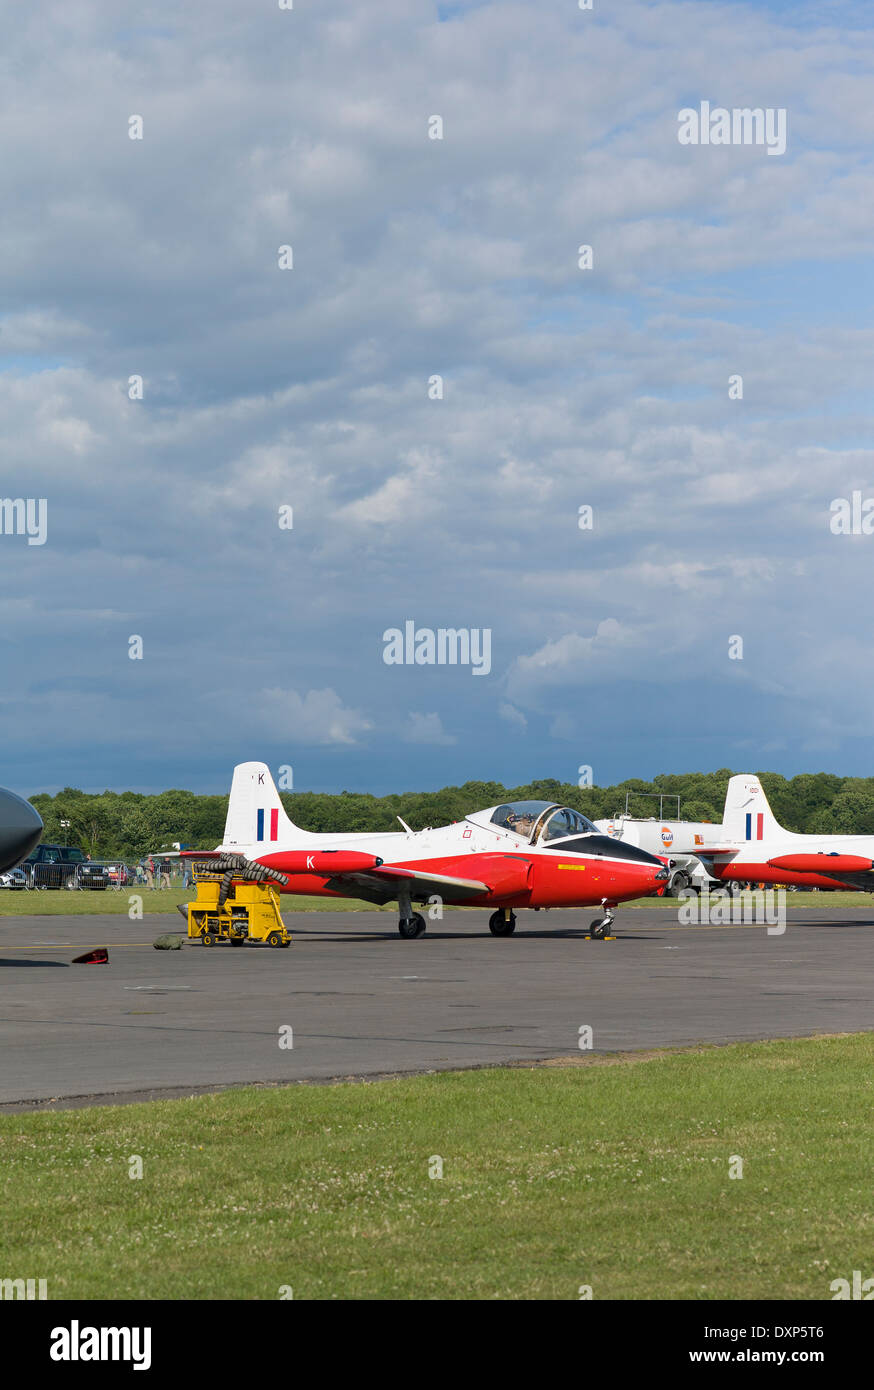 Jet Provost T5 two-seat training aircraft at a show in UK Stock Photo